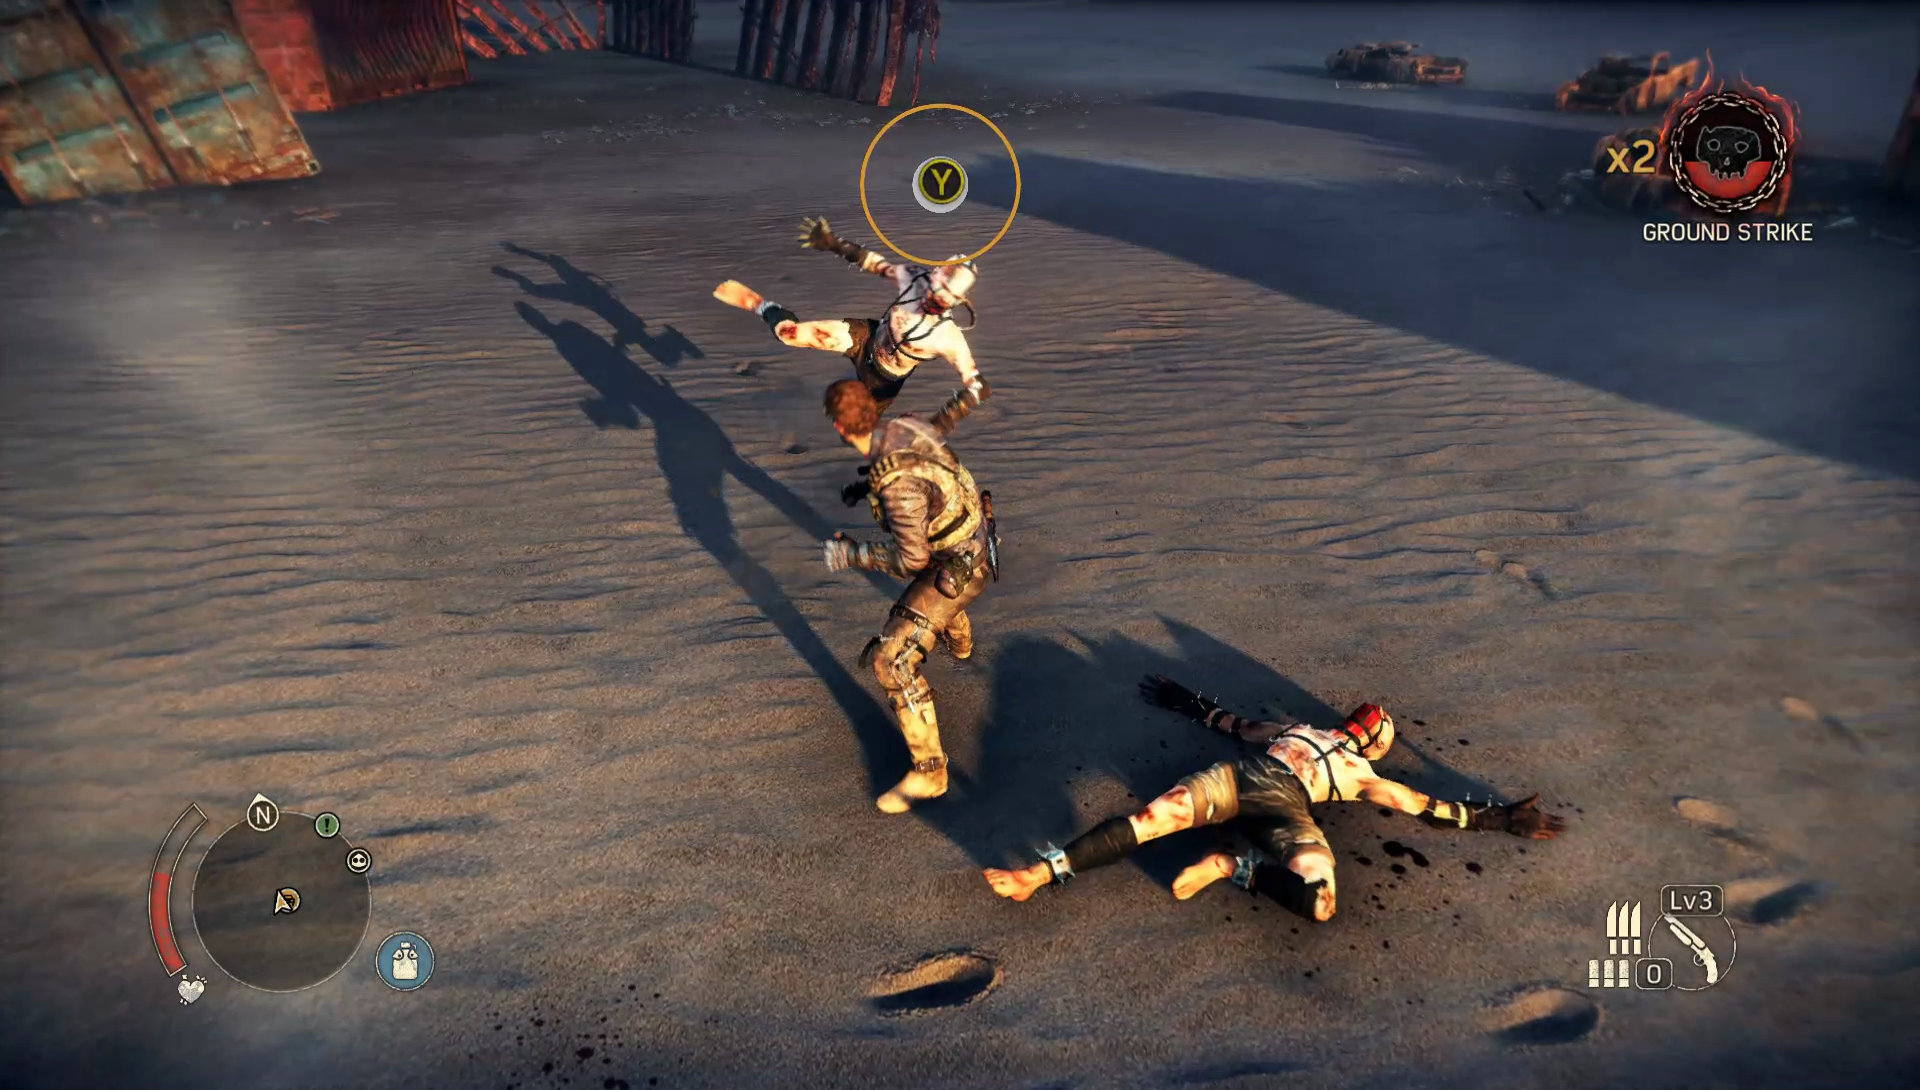 Melee combat is all about timing counter attacks.